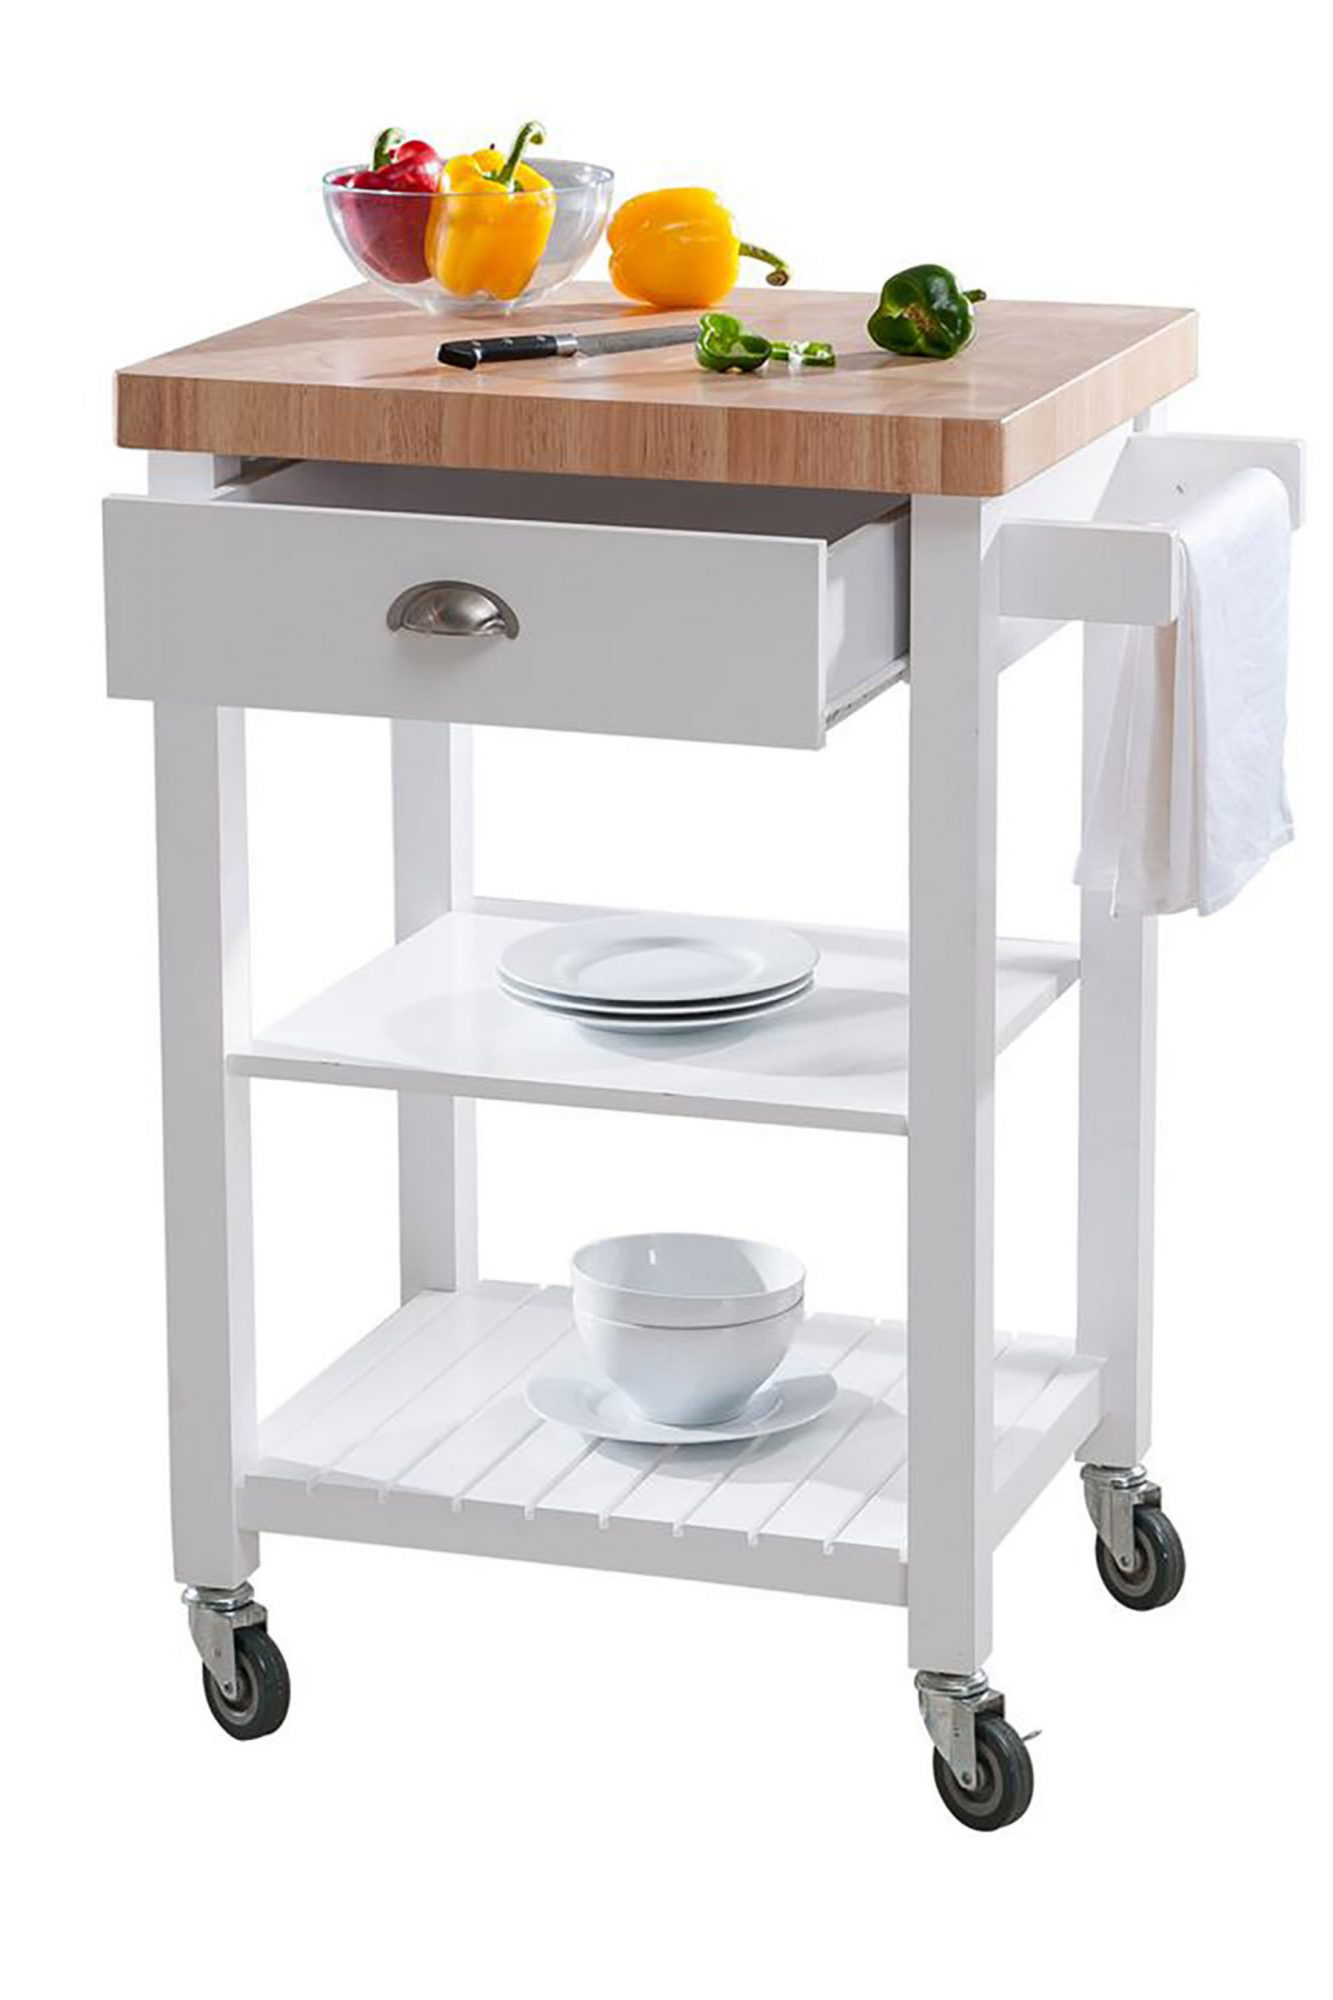 Hampton Bay Brookwood White Wood Kitchen Cart on Wheels with Drawer and Storage at The Home Depot